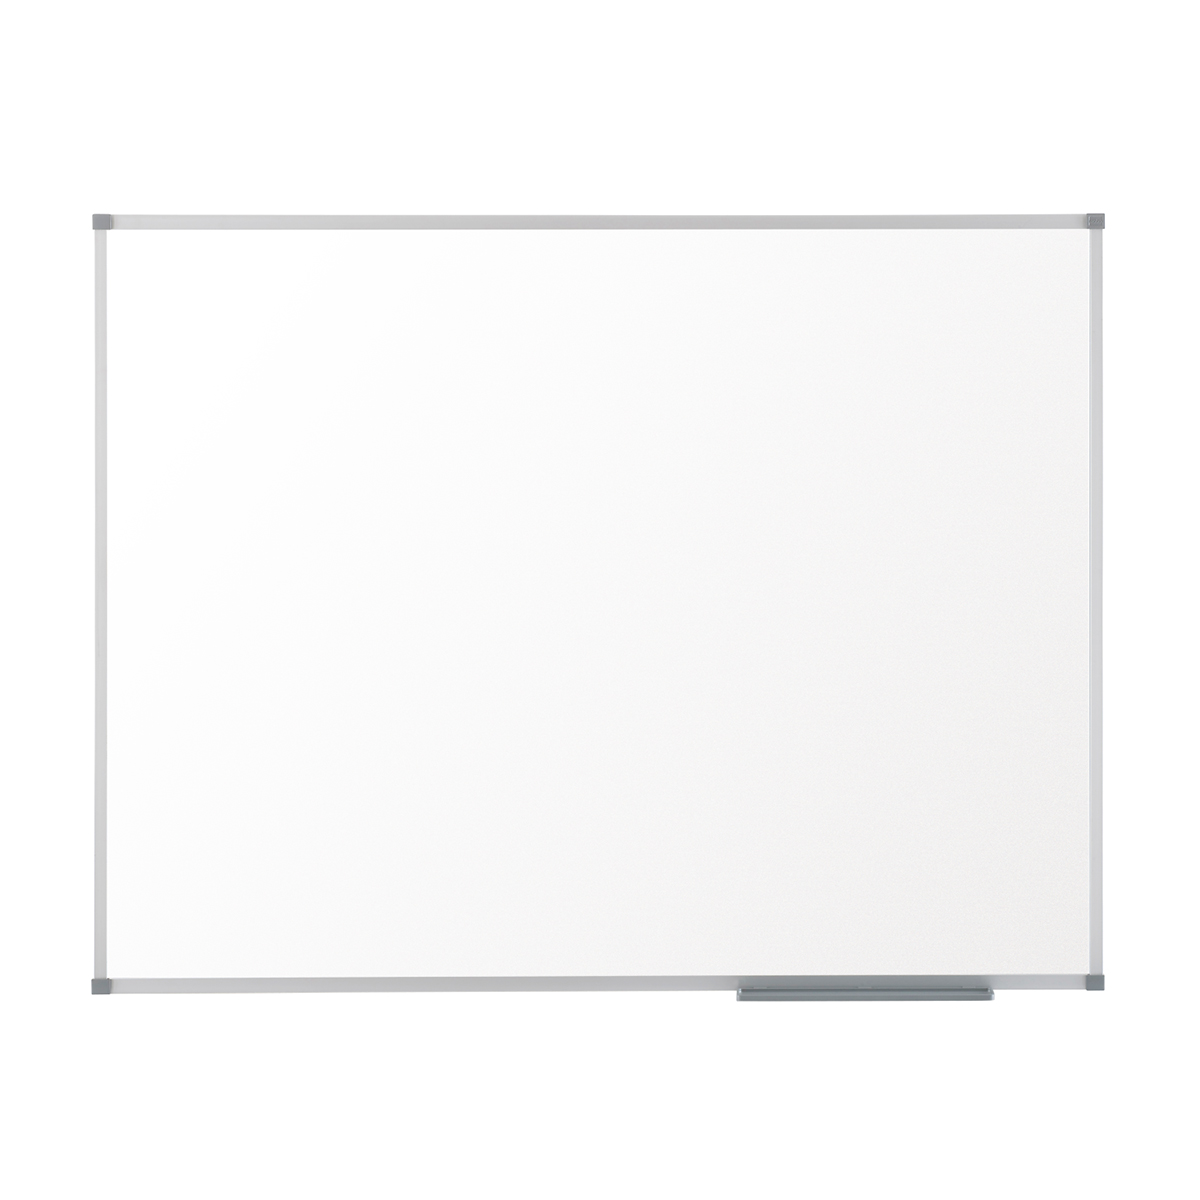 Nobo 1905204 Basic Melamine Non Magnetic Whiteboard with Basic Trim 1500 x 1000mm